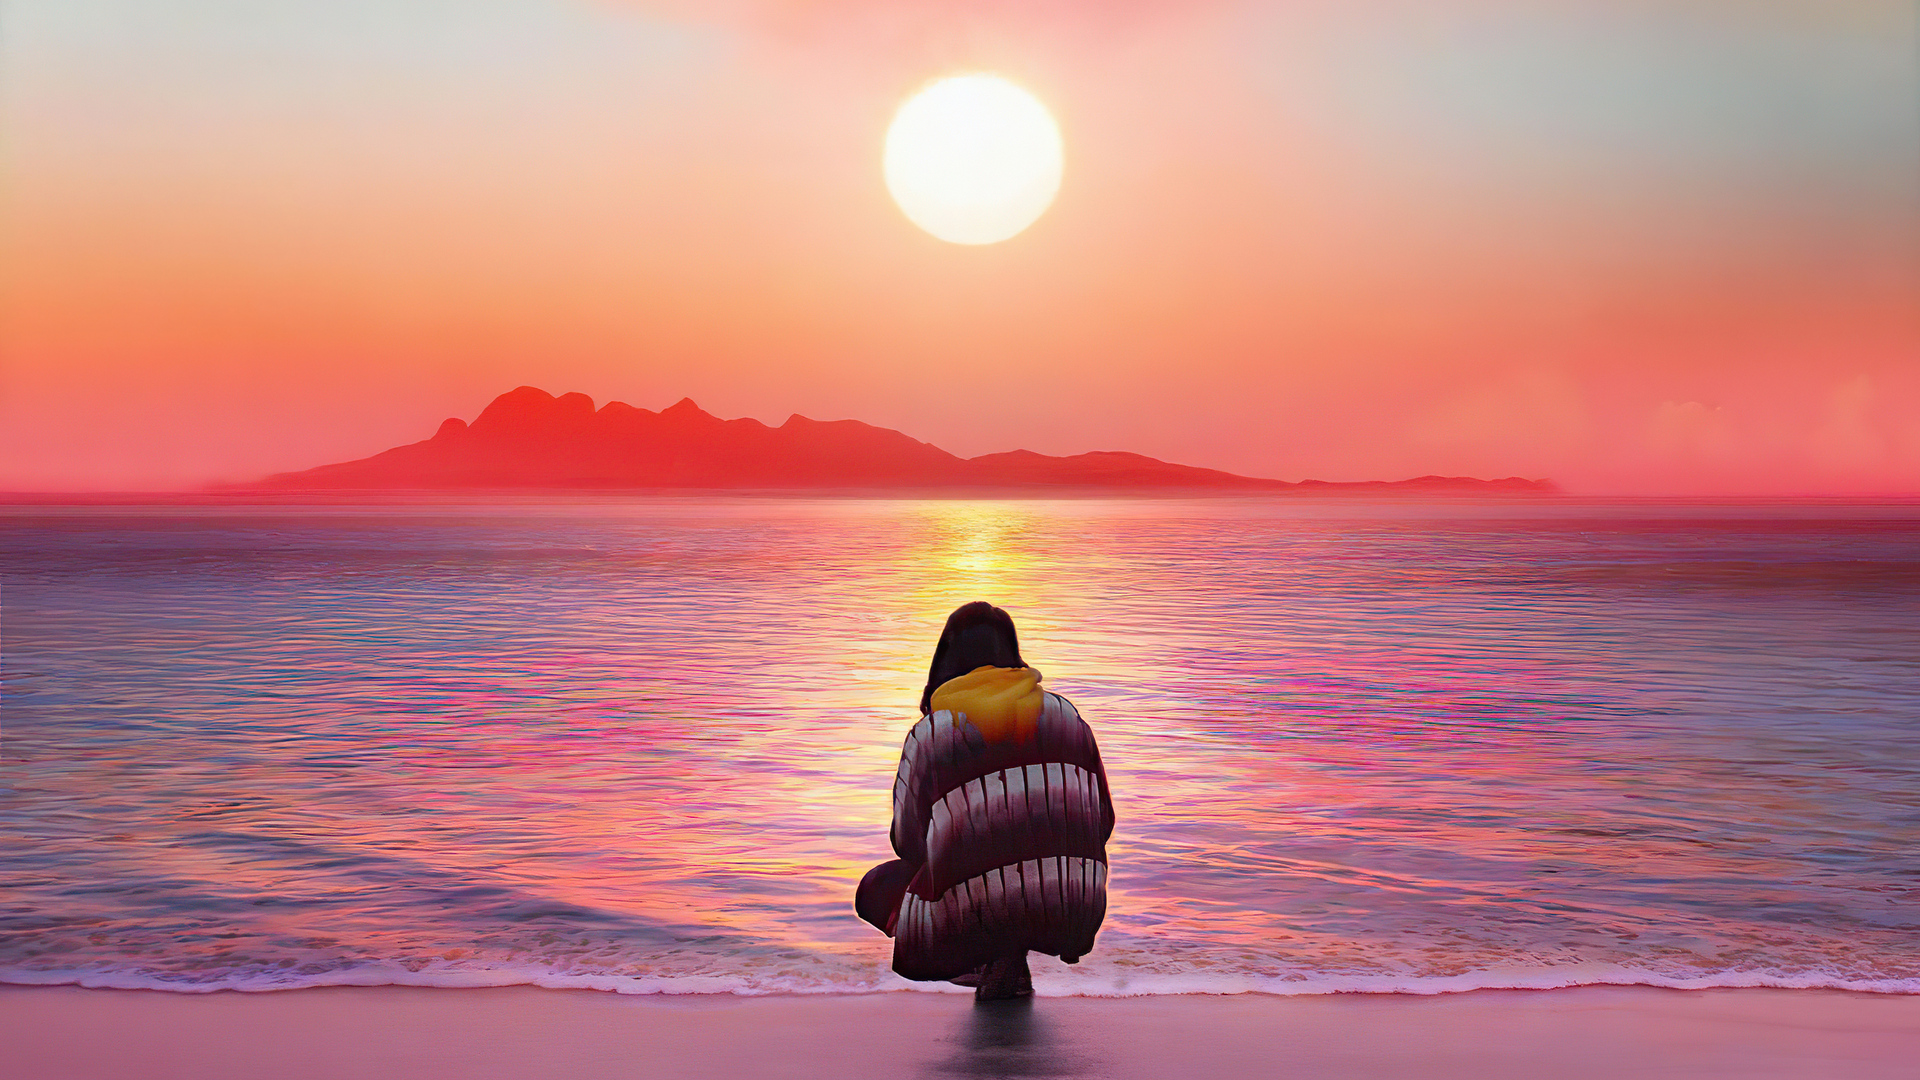 1920x1080 Watching The Sunset On Beach 4k Laptop Full Hd 1080p Hd 4k Wallpapers Images Backgrounds Photos And Pictures